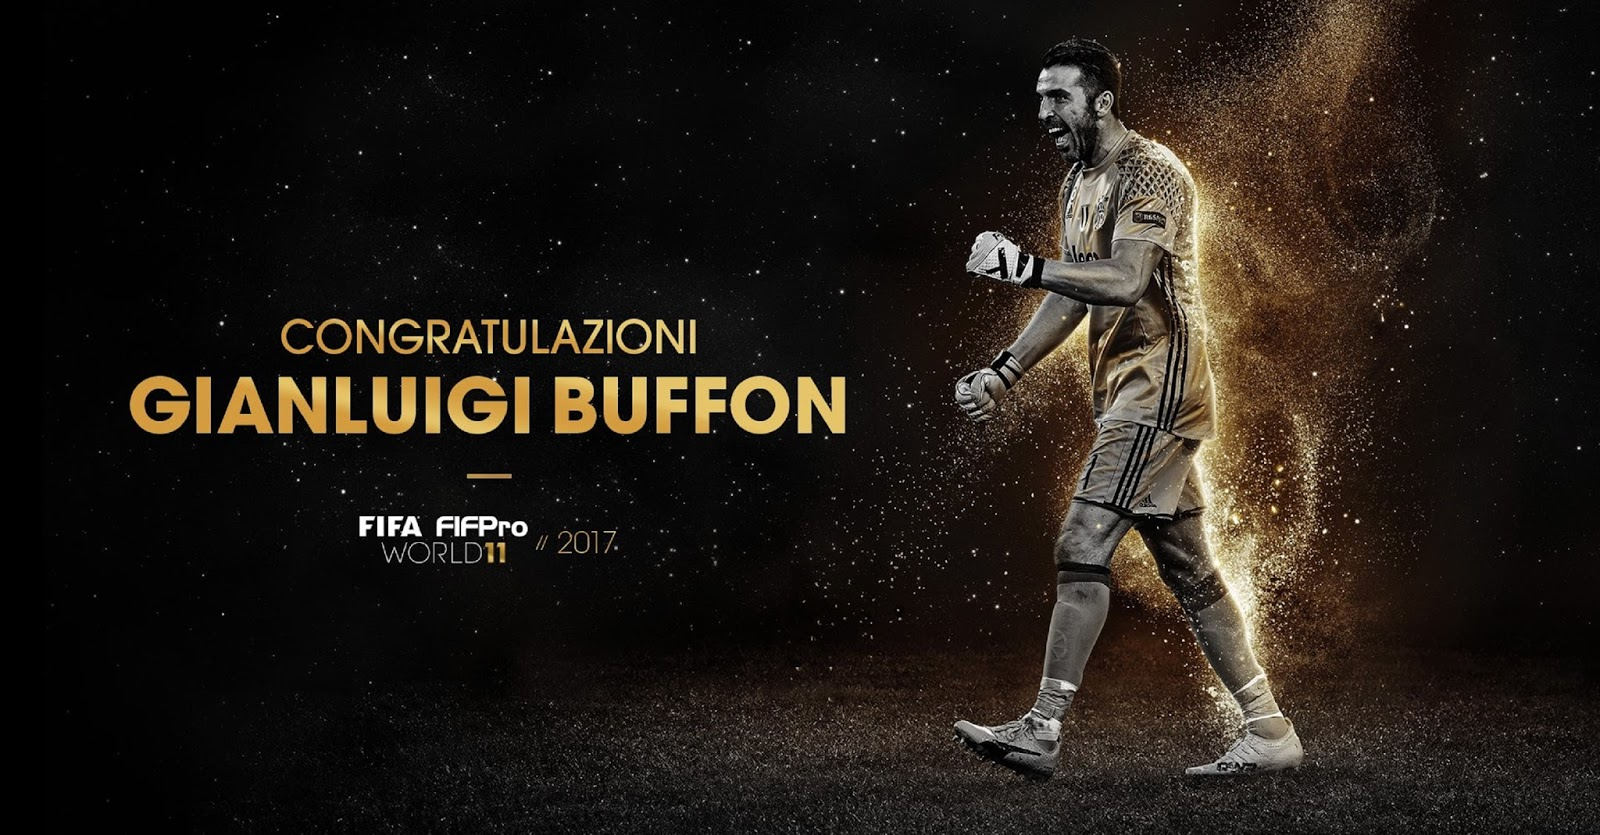 GIANLUIGI BUFFON 9